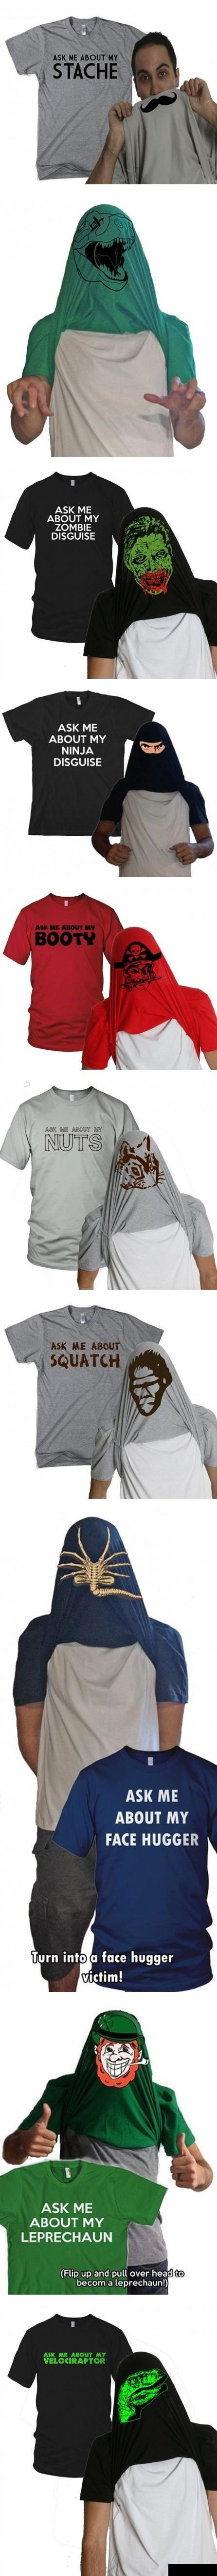 Awesome T-Shirt Compilation